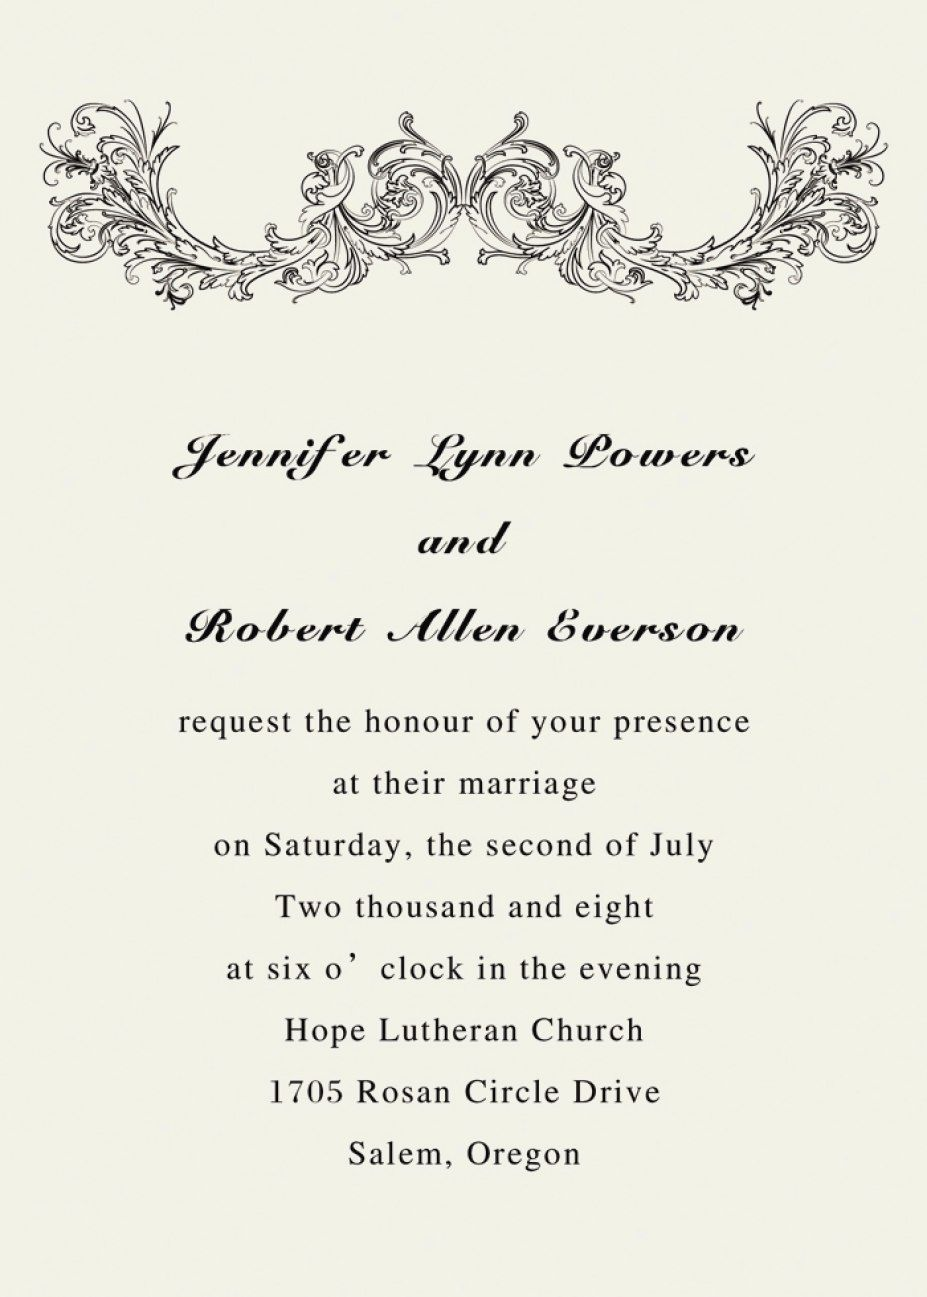 28 Art Gallery Simple Wedding Invitation Wording Memorable For Lovers That Happen To Be Wedding